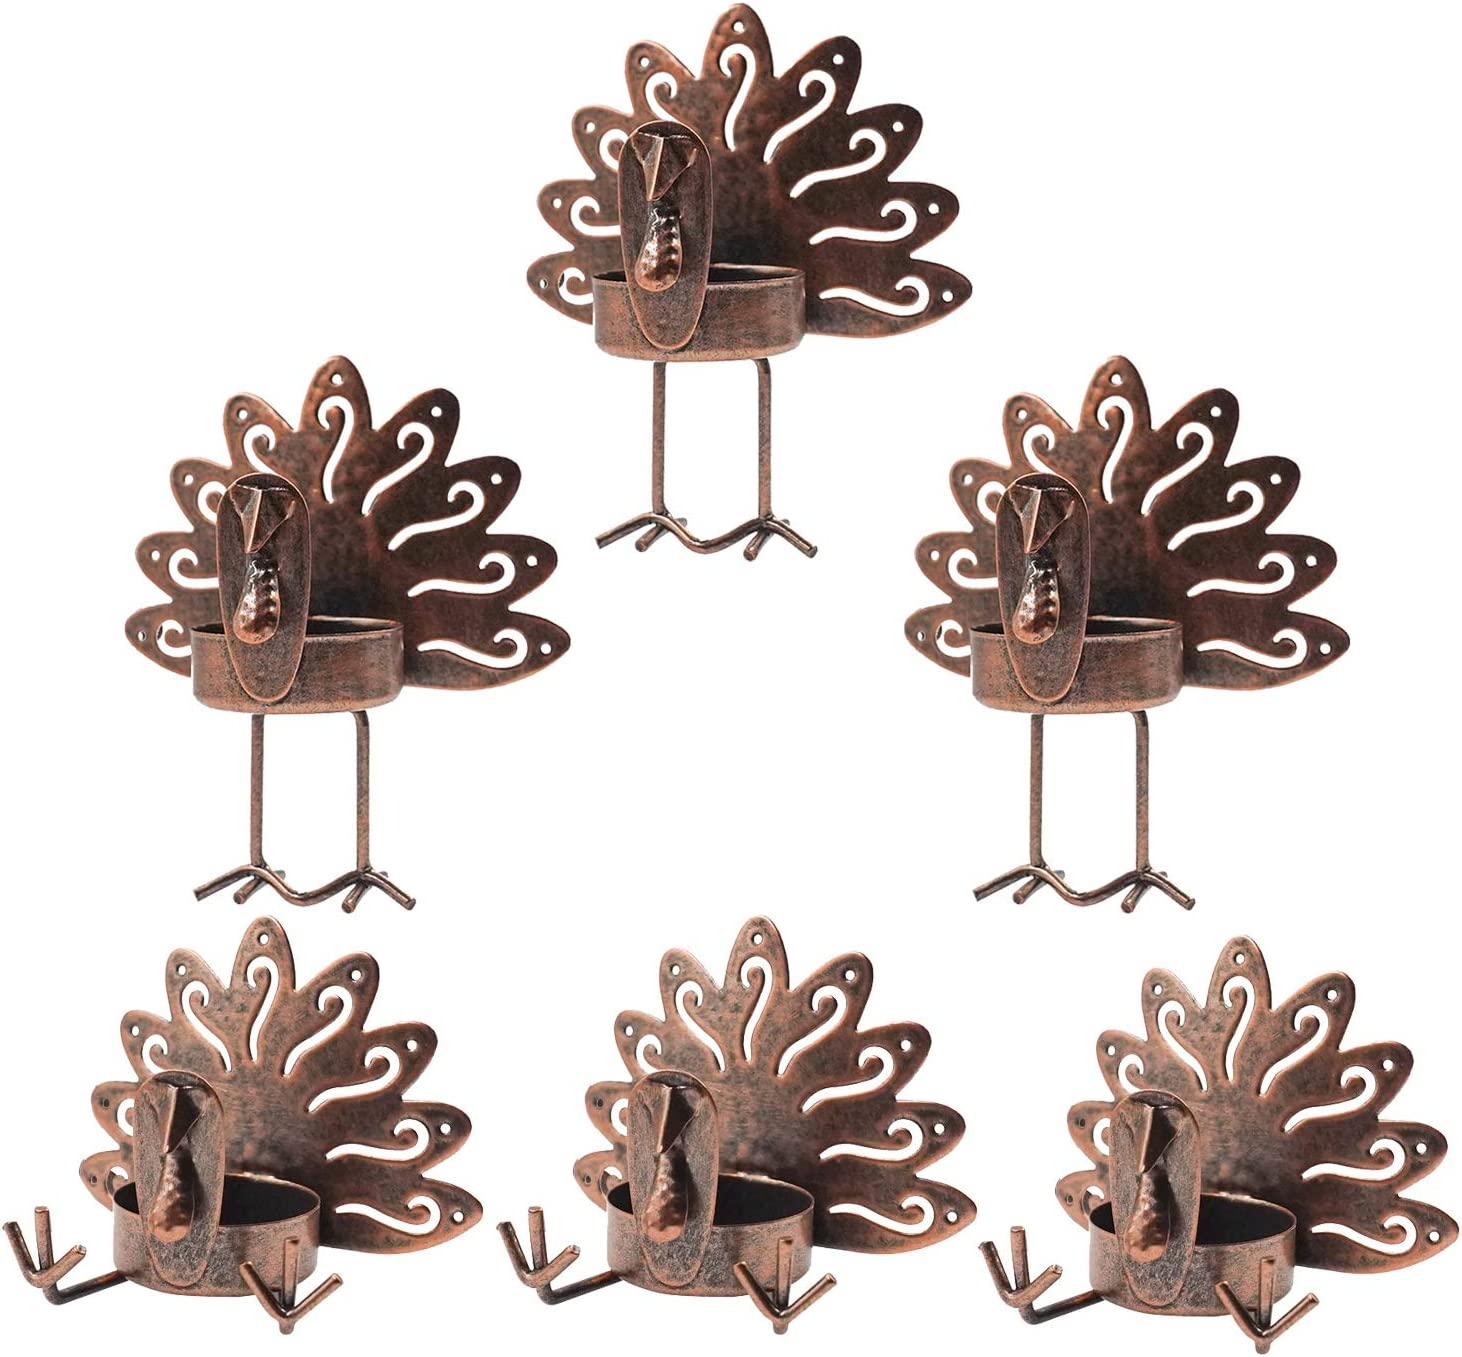 Funpeny 6 Pack Metal Turkey Tealight Candleholders, 6 Pack Turkey Tea Light Candle Holders Holiday Candlestick Thanksgiving Decoration for Home, Table, Fireplace, Window